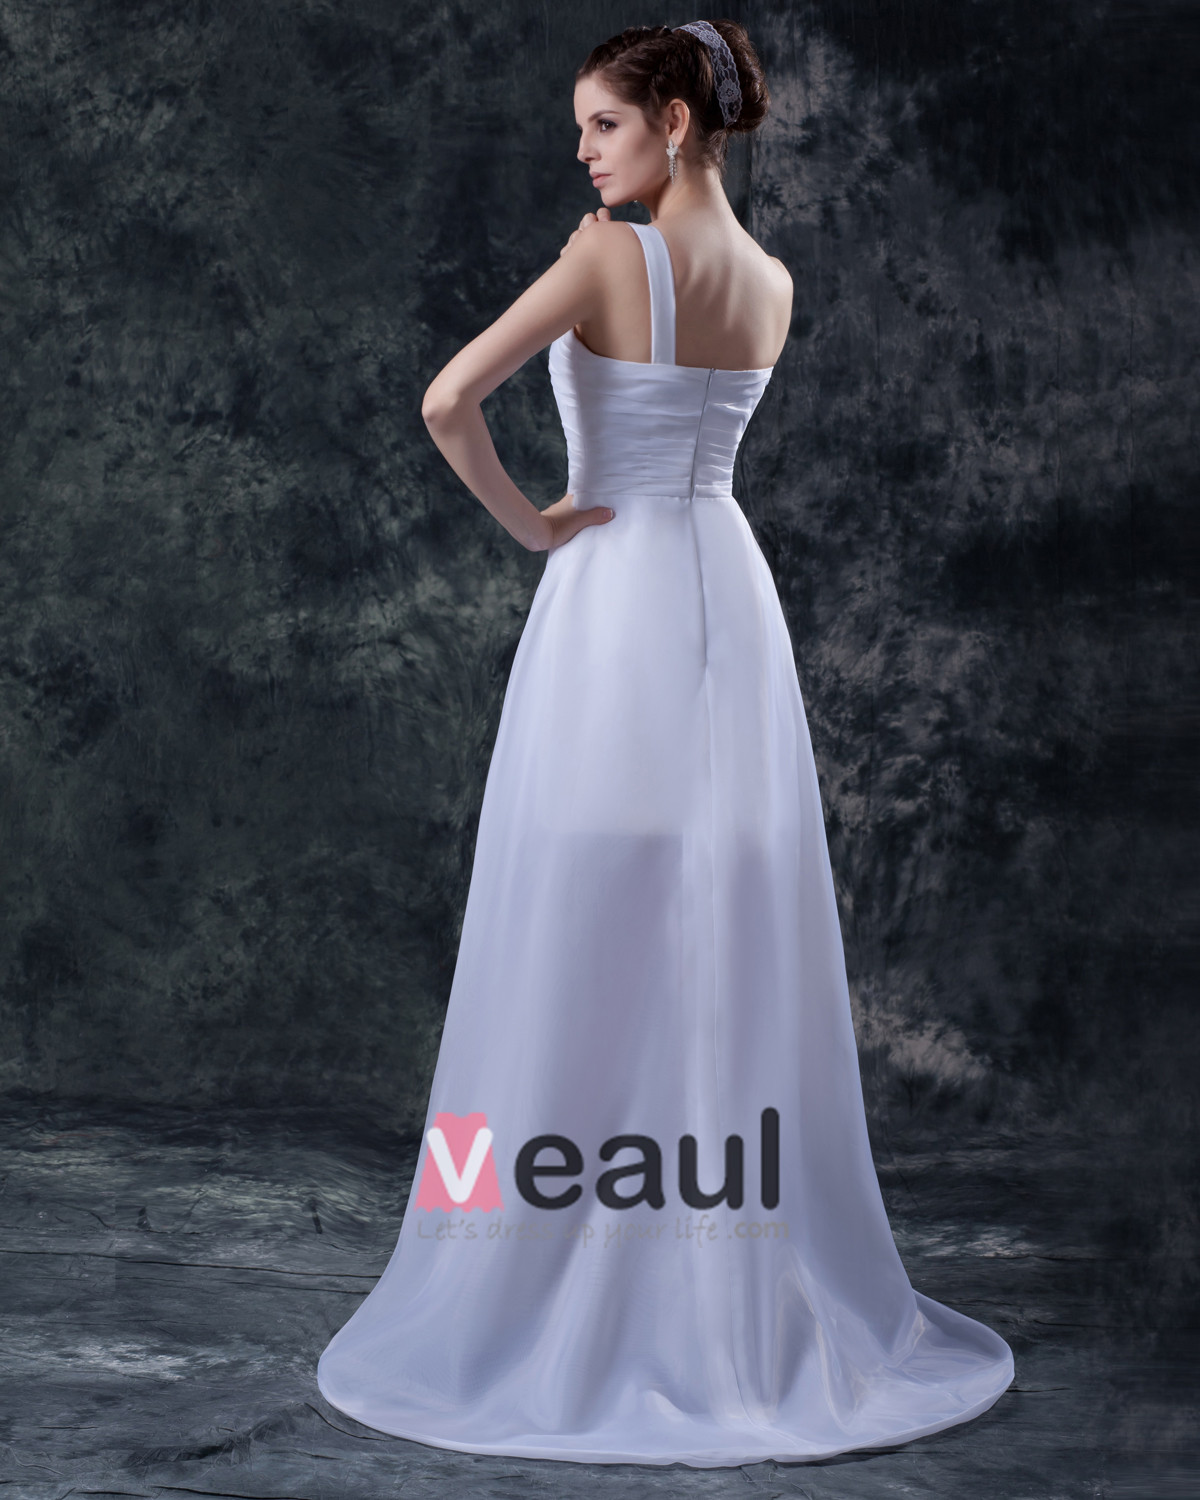 Taffeta Asymmetric Applique Strapless Short Bridal Gown